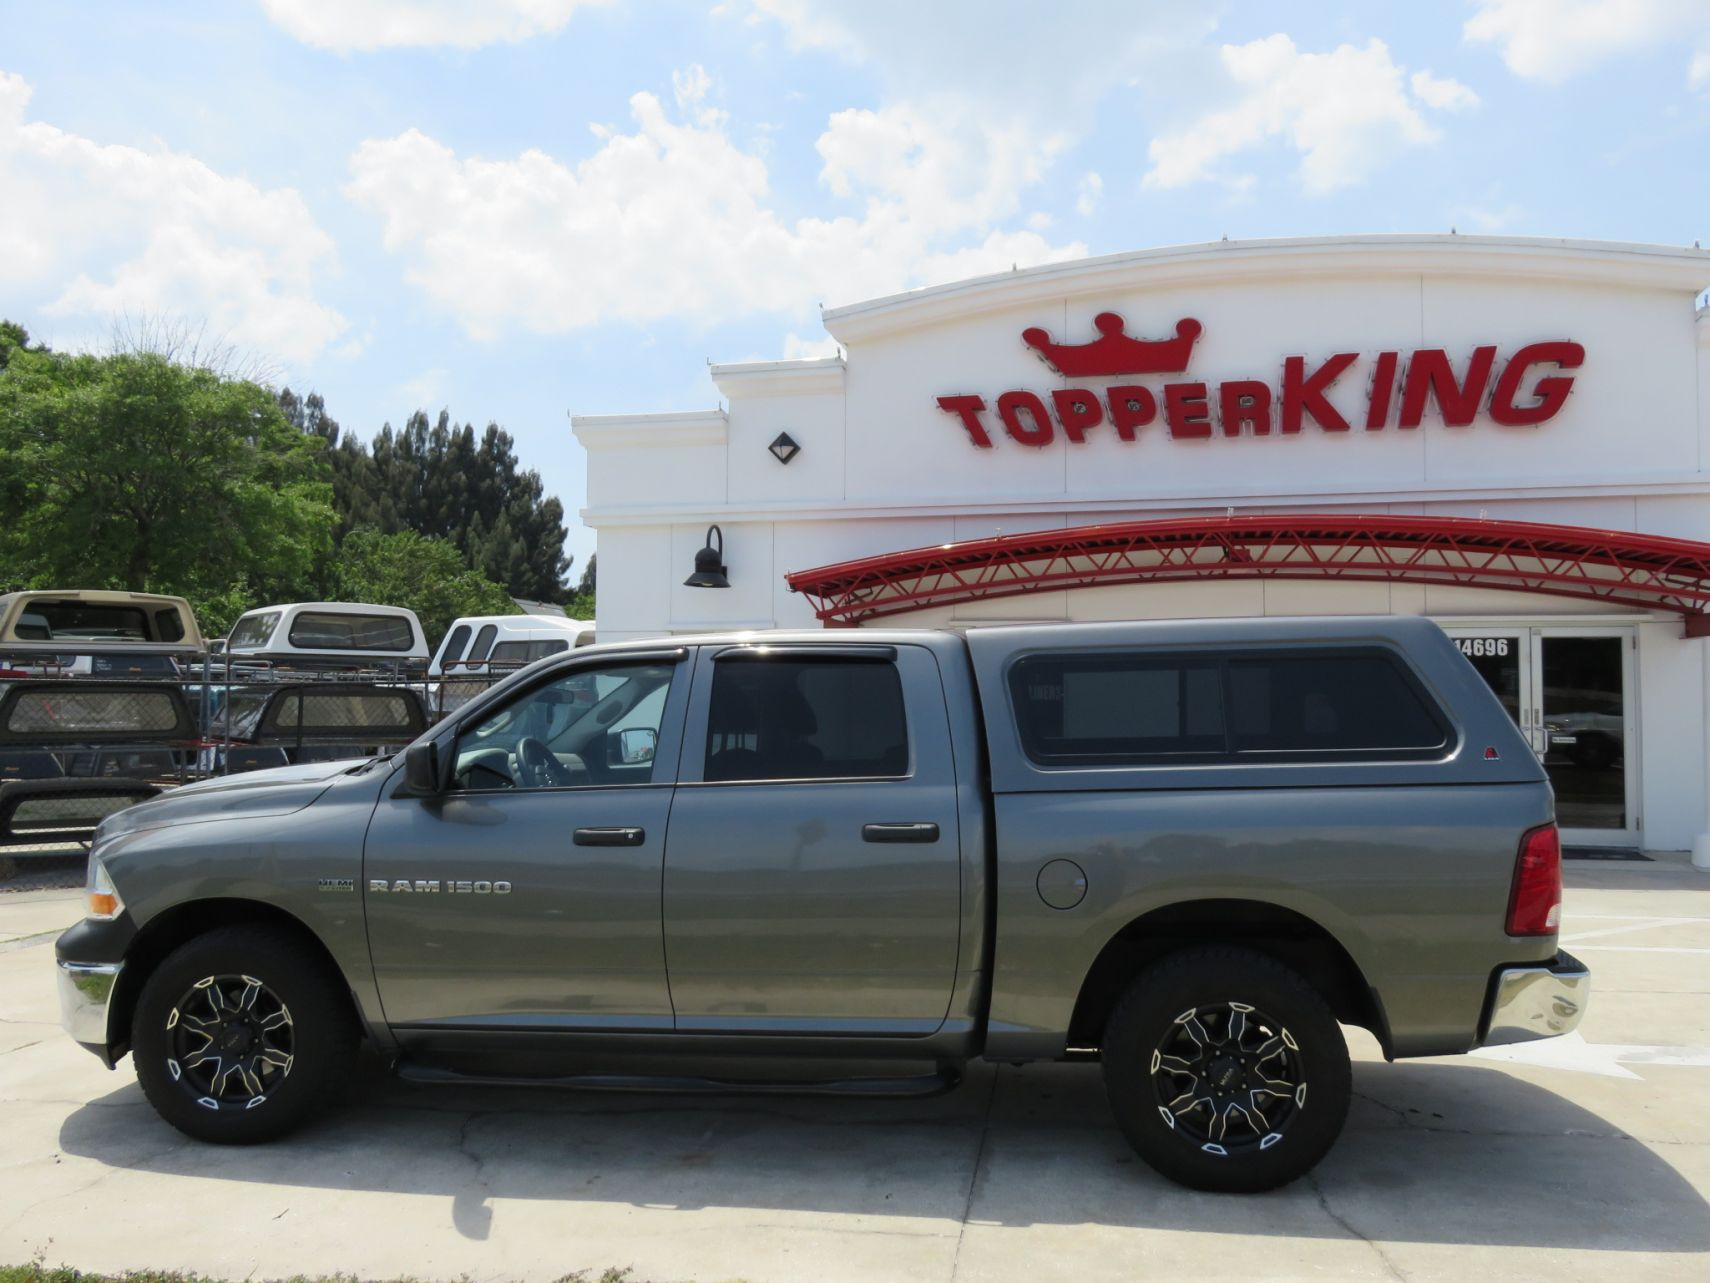 2017 Dodge Ram 1500 LEER 100XR, Tint, Nerf Bars, Vent Visors by TopperKING in Brandon, FL 813-689-2449 or Clearwater, FL 727-530-9066. Call today to start!